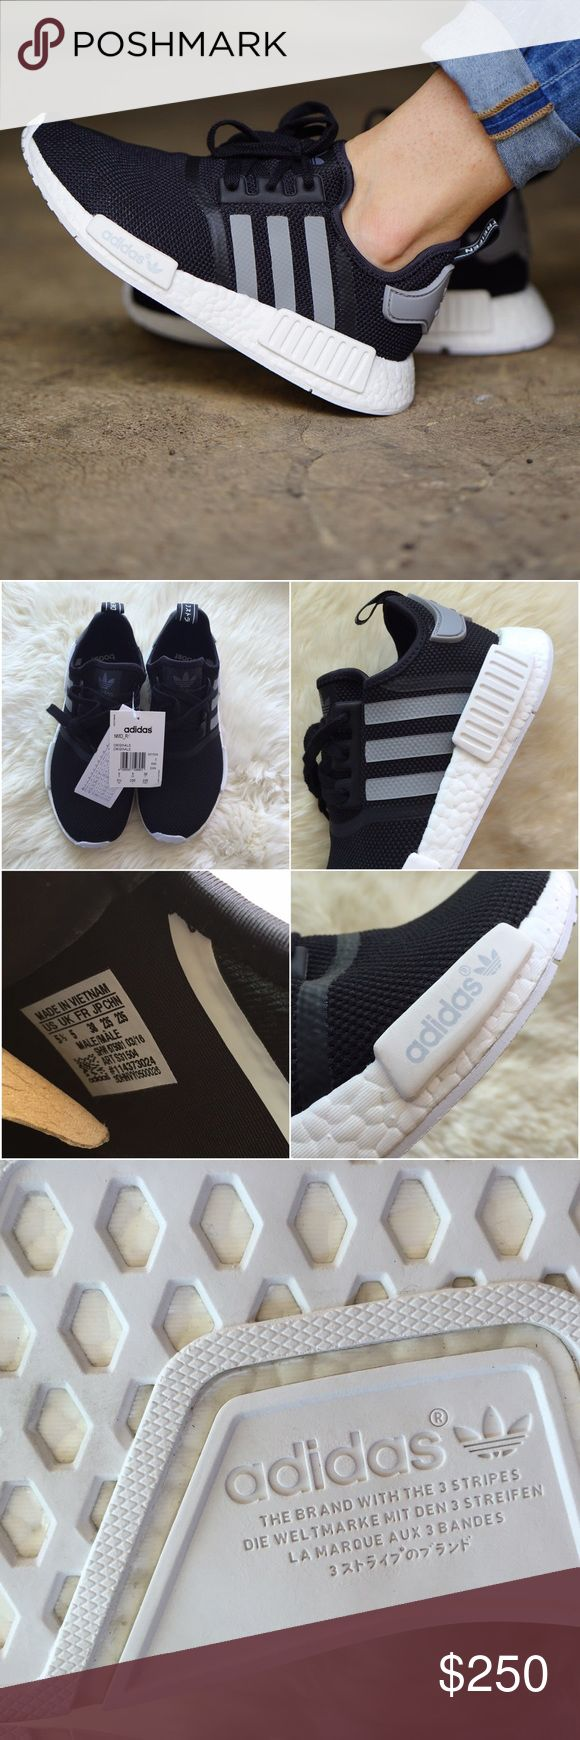 Adidas NMD R1 Footlocker Exclusive NMD R1 FootLocker Klekt